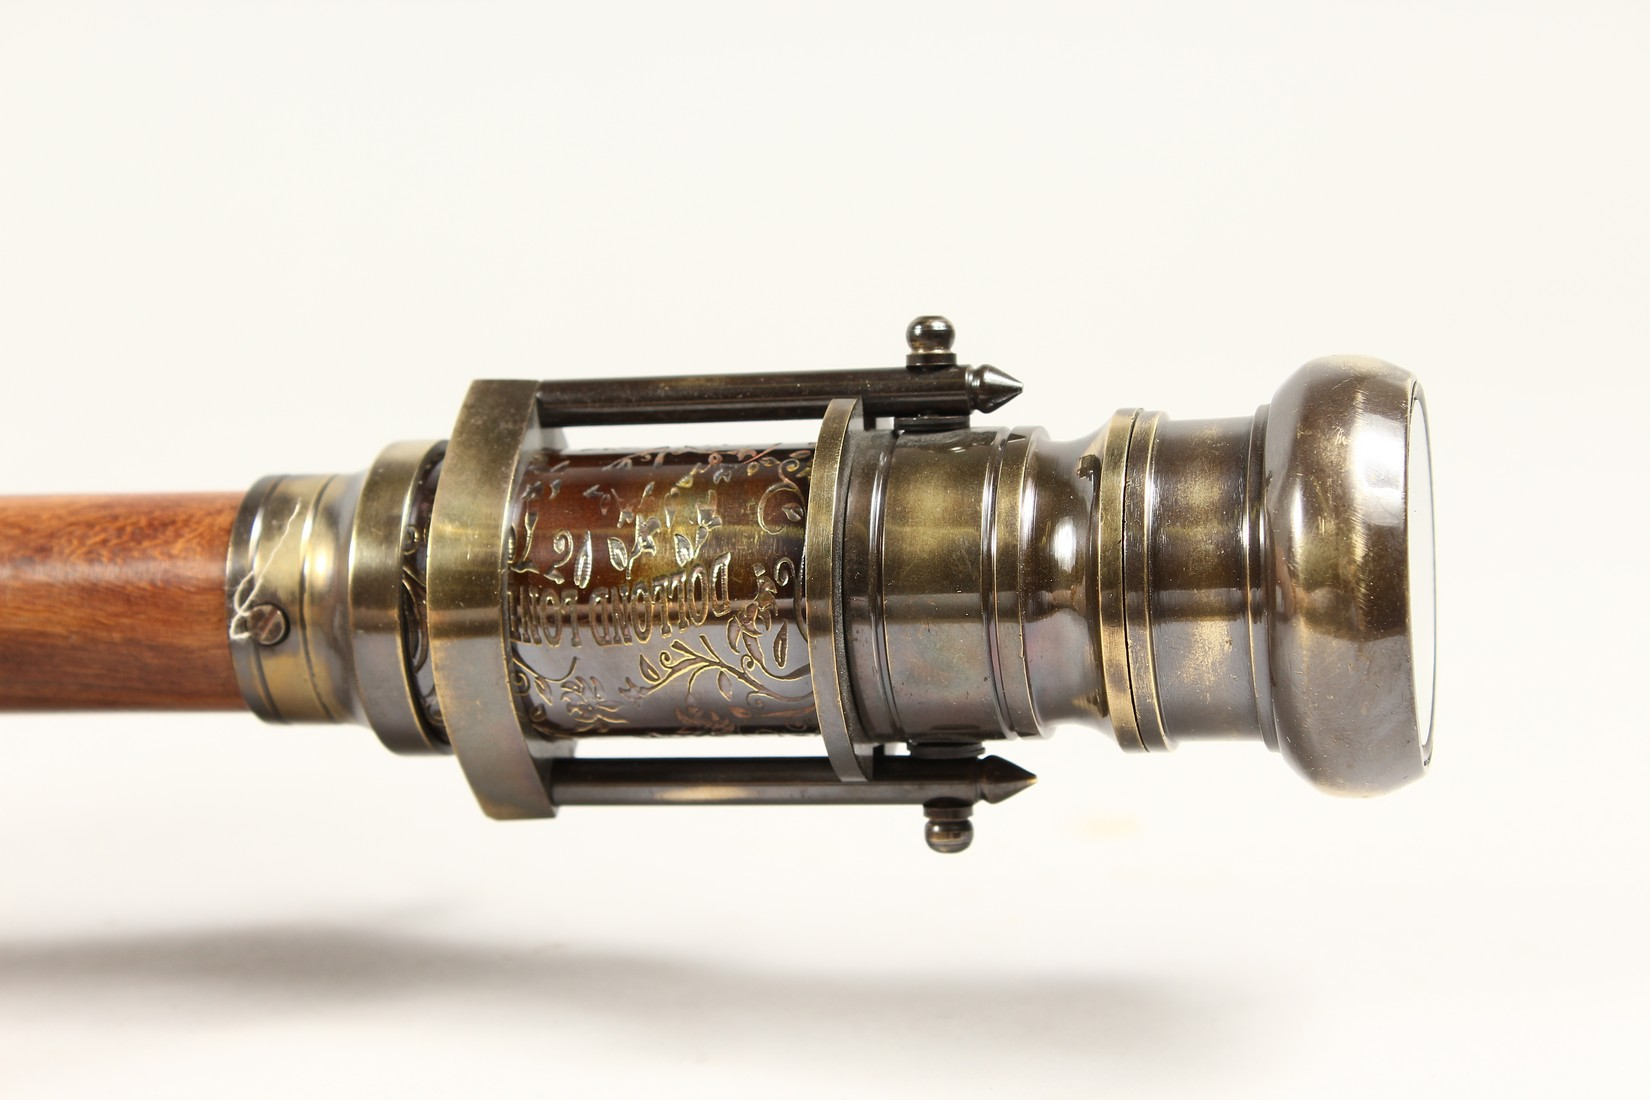 A WALKING STICK with compass and telescope - Image 5 of 9